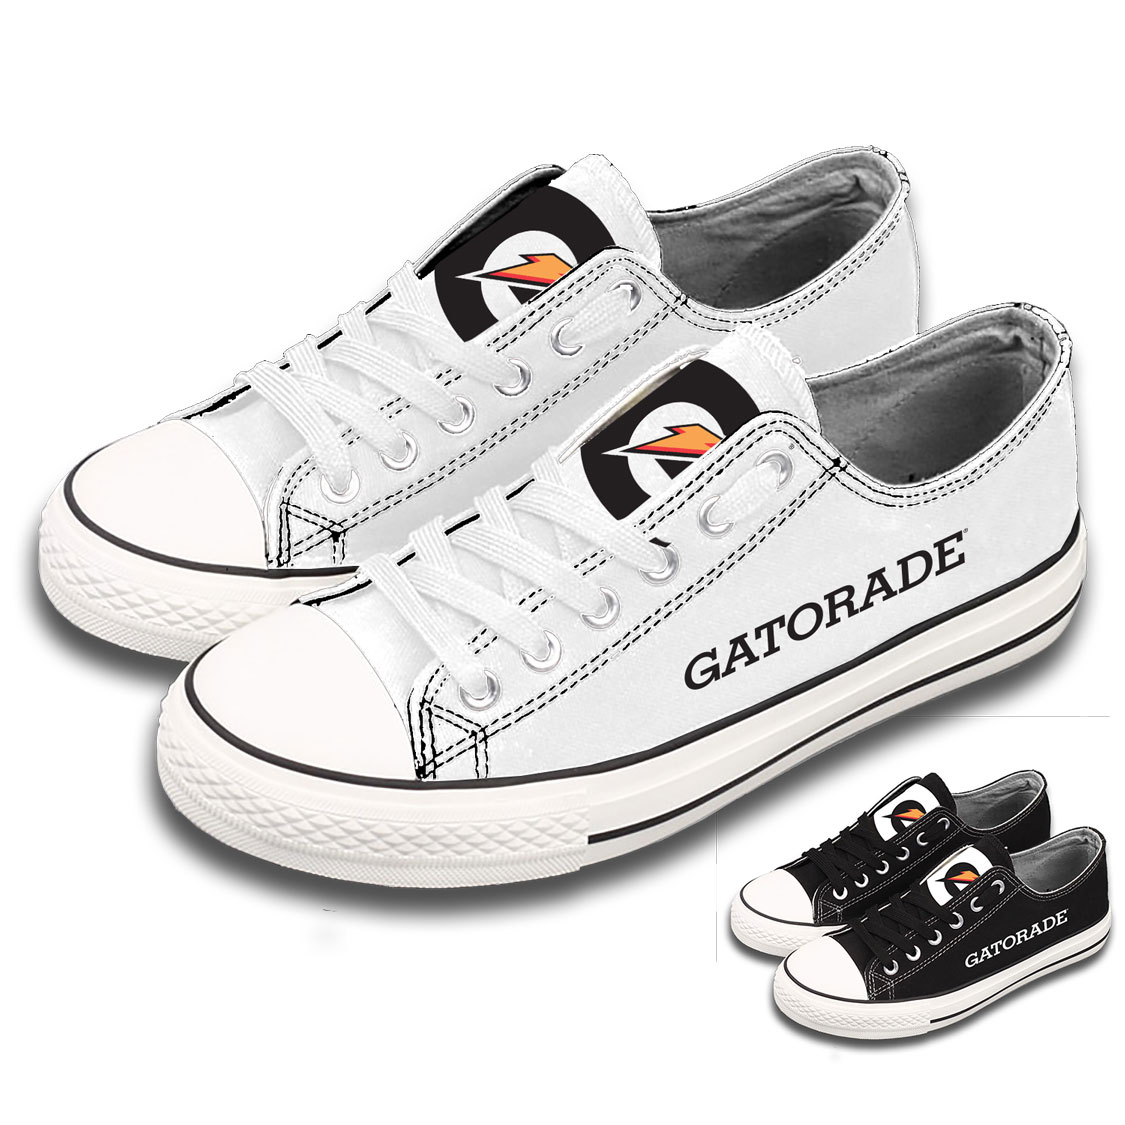 Low Cut Sneakers - Gatorade